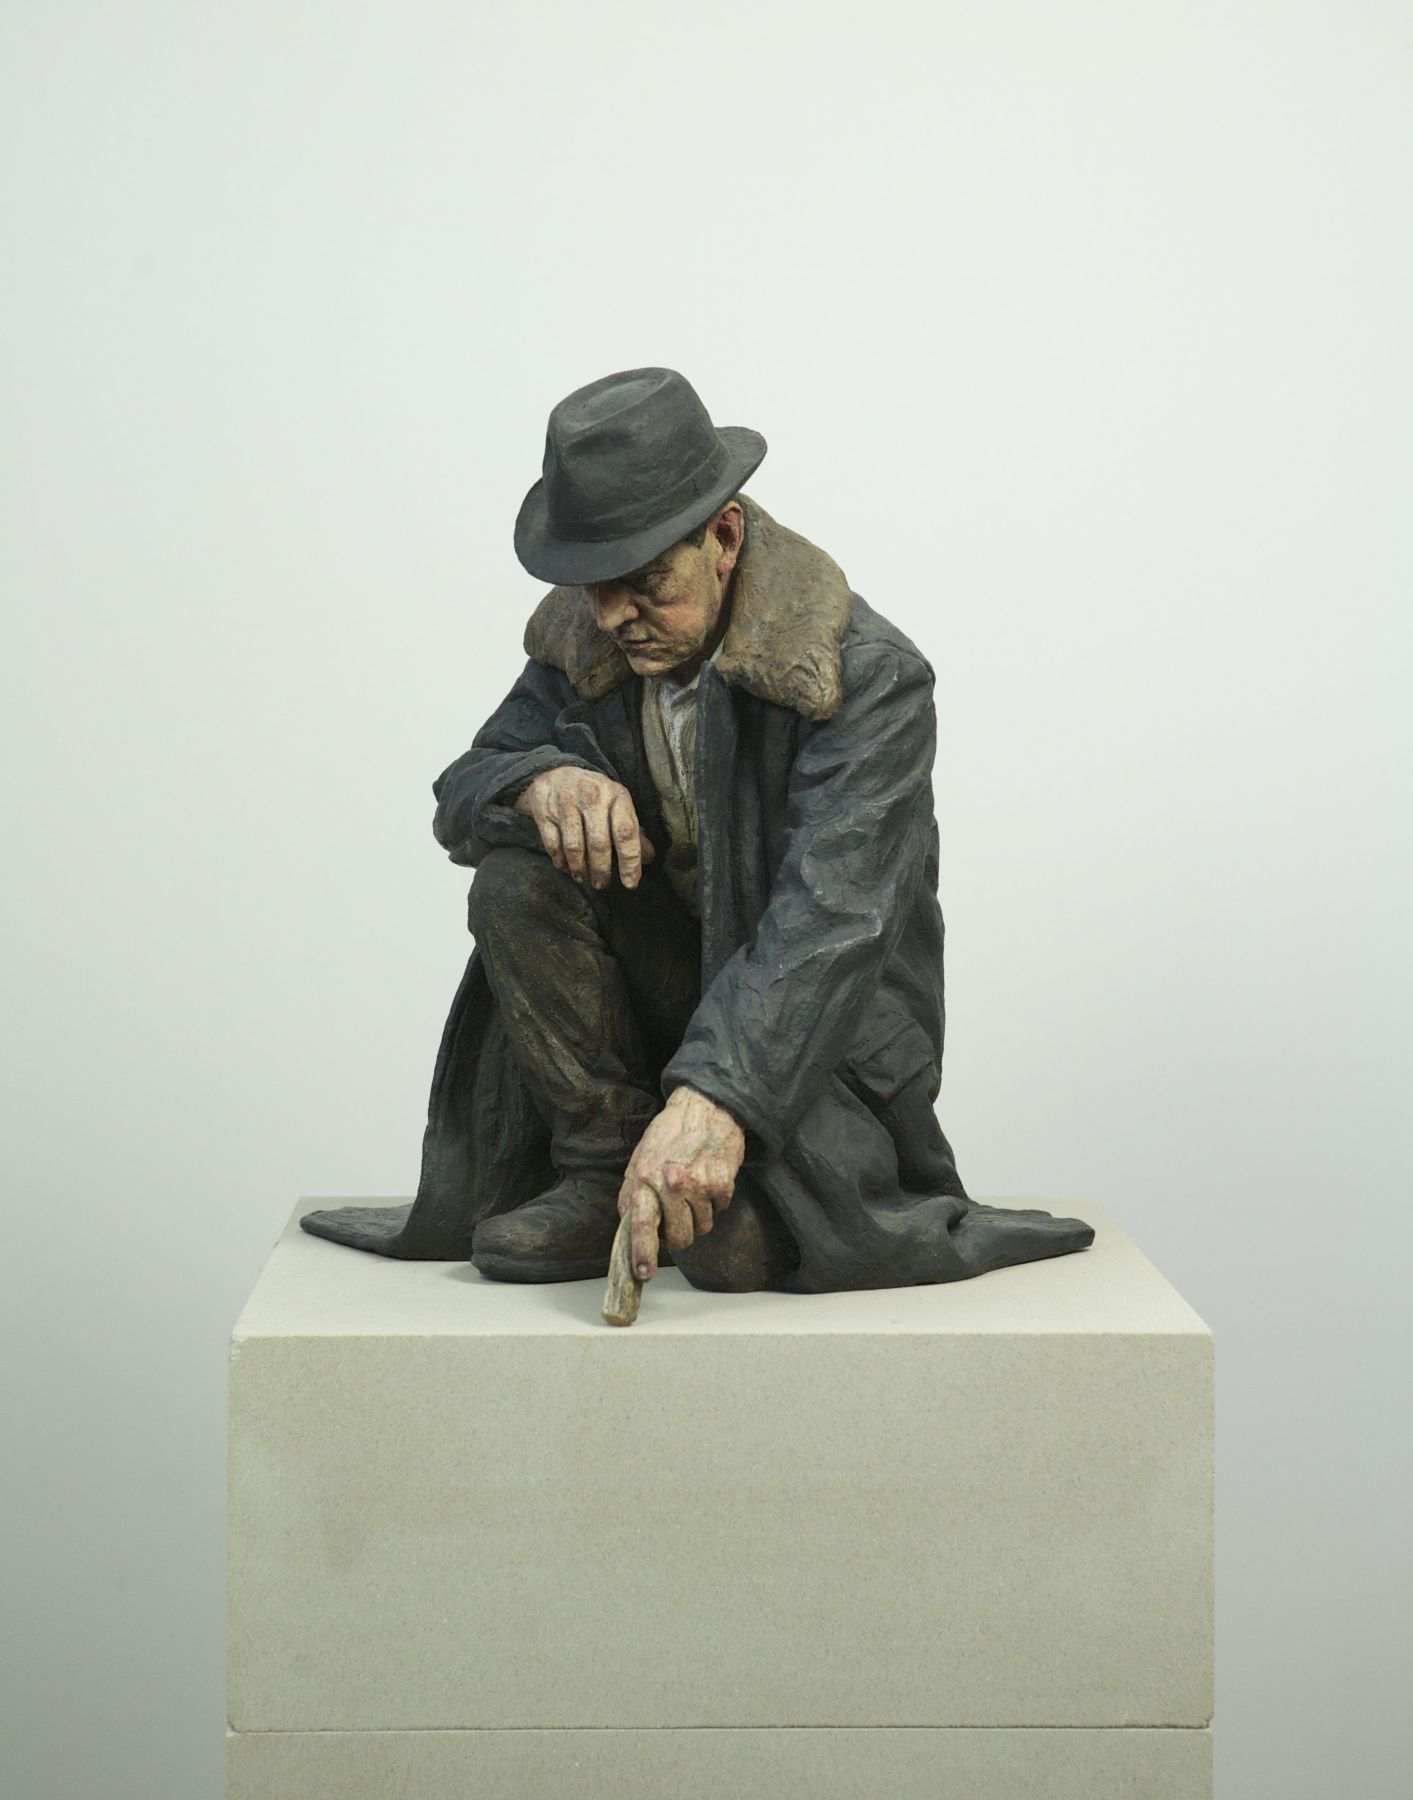 Sean Henry, The Way It Will Be, 2014, bronze, oil paint, 20 x 17 x 16 inches, Edition of 6